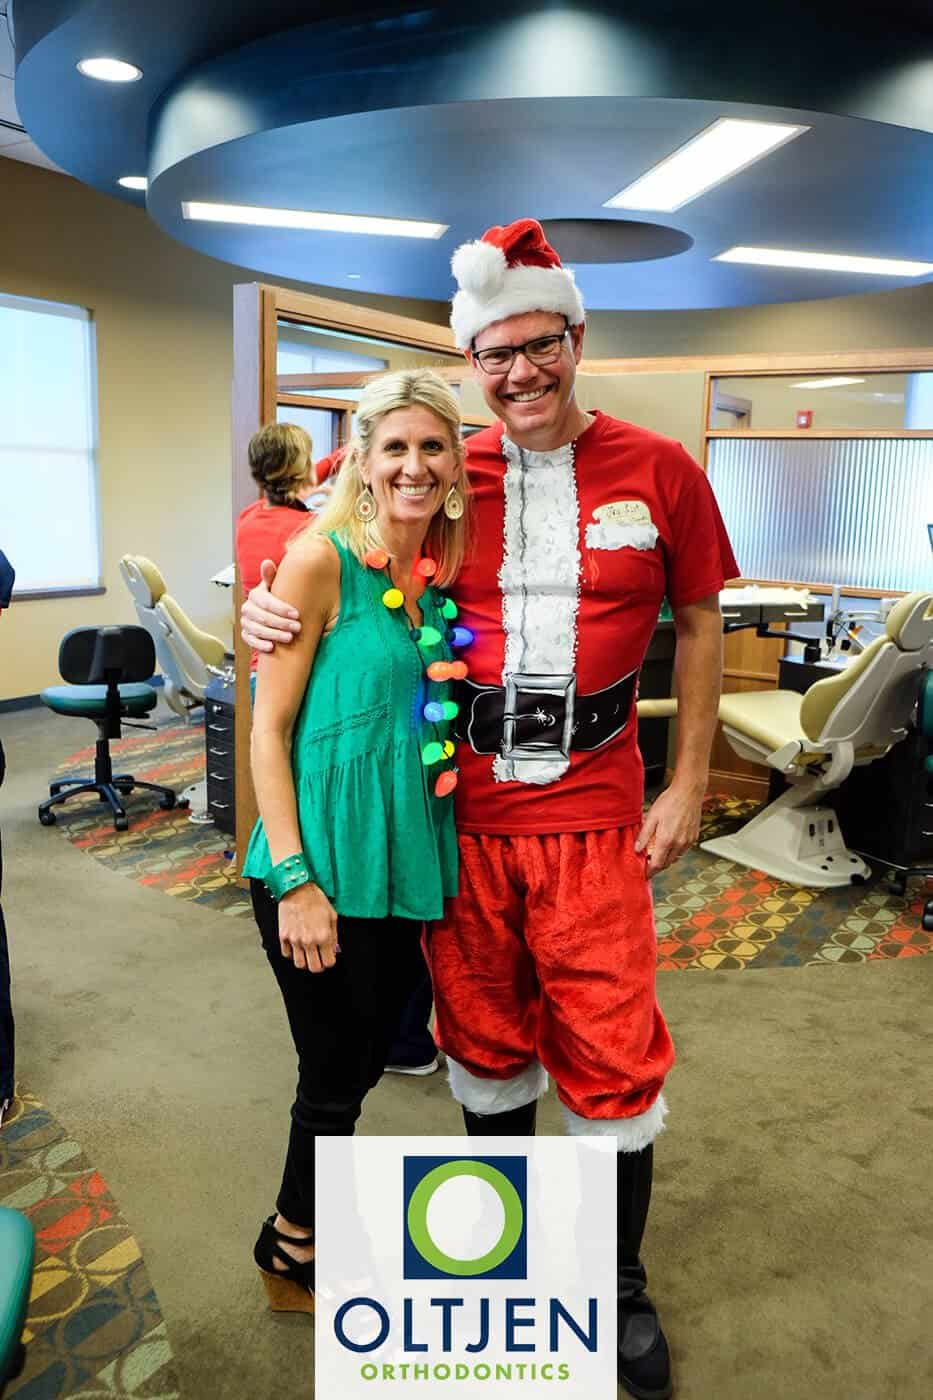 Oltjen-Orthodontics-Christmas-in-July-9-of-10